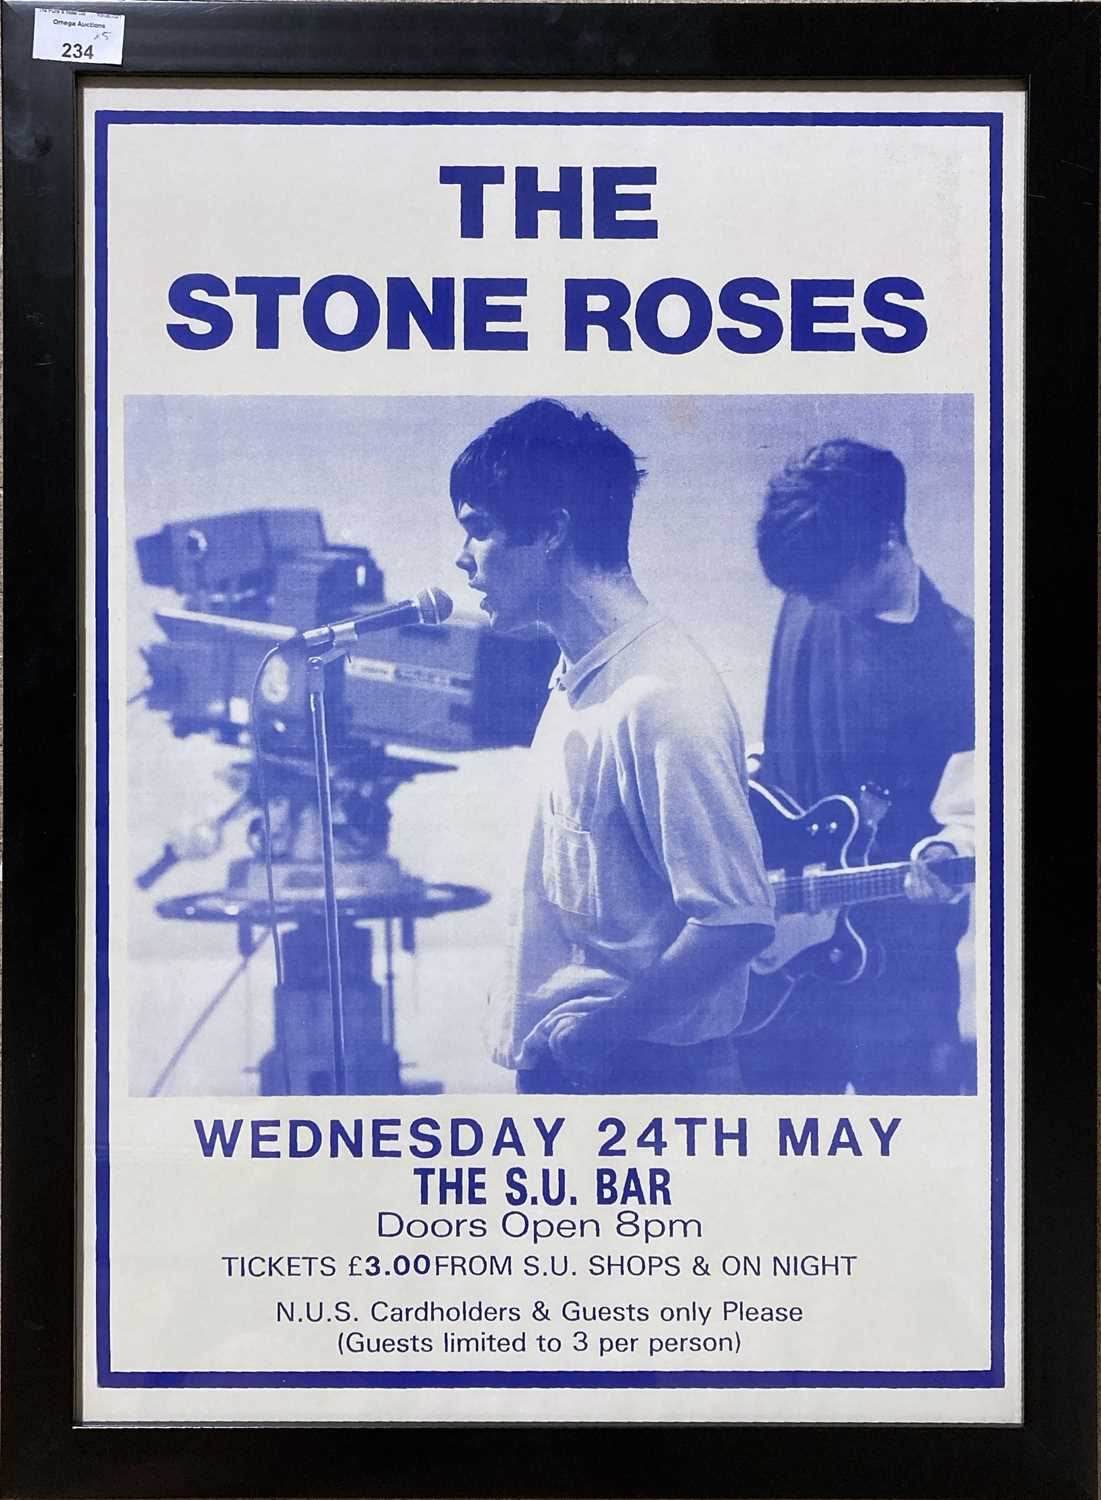 STONE ROSES / BLACK GRAPE POSTERS. - Image 2 of 5